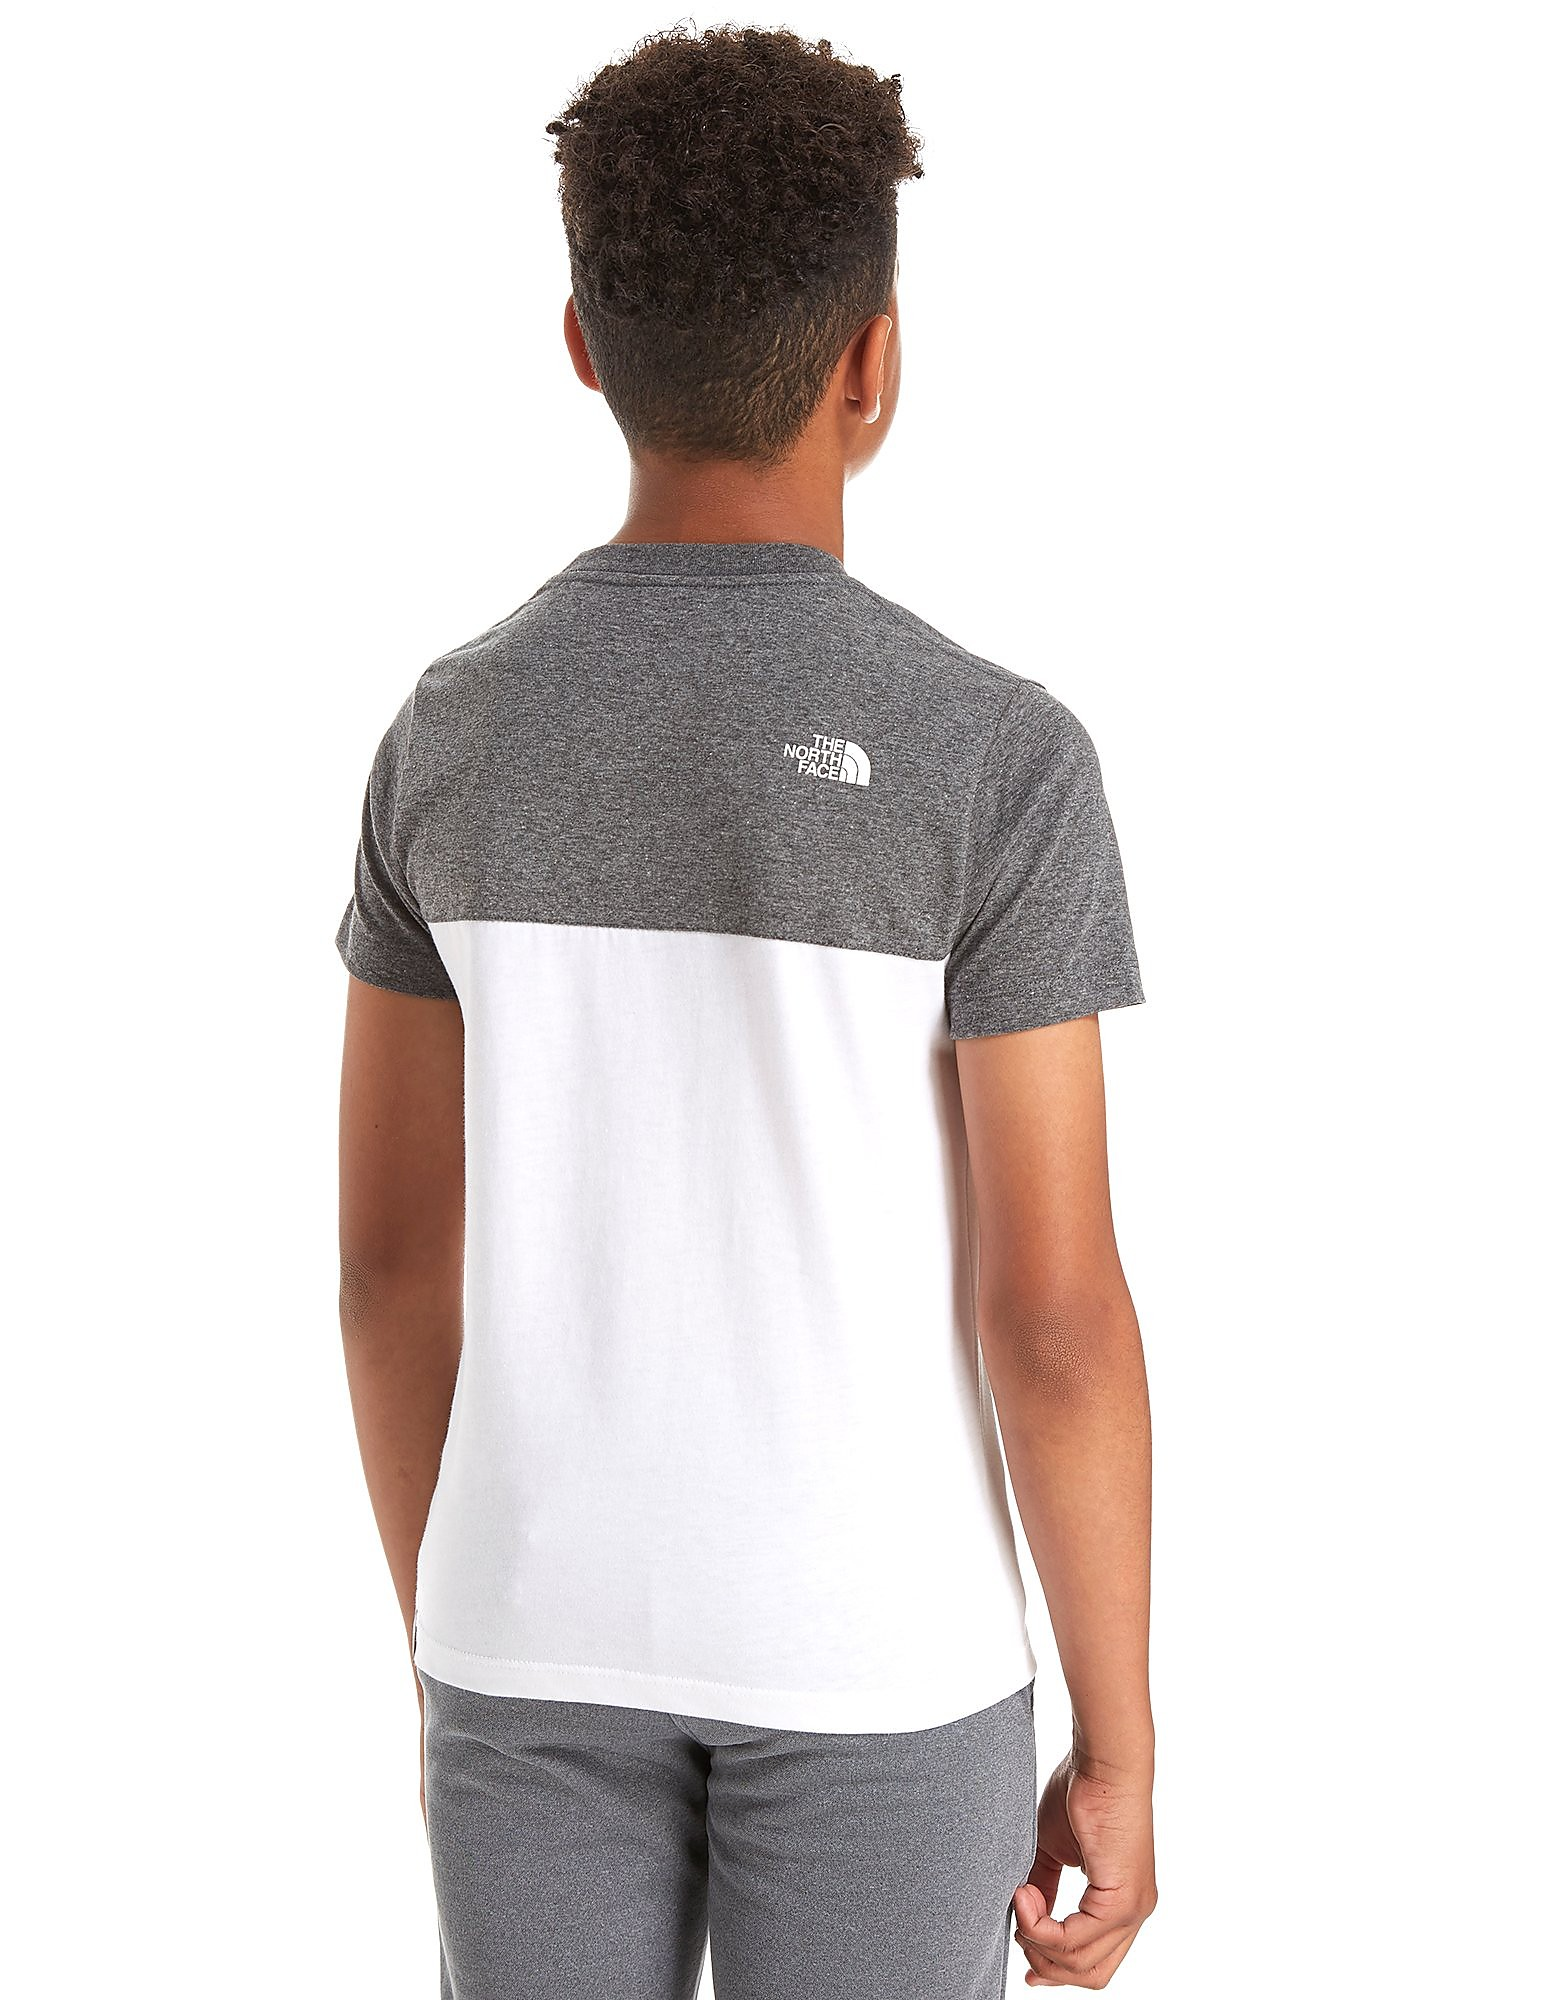 The North Face camiseta Colour Block júnior